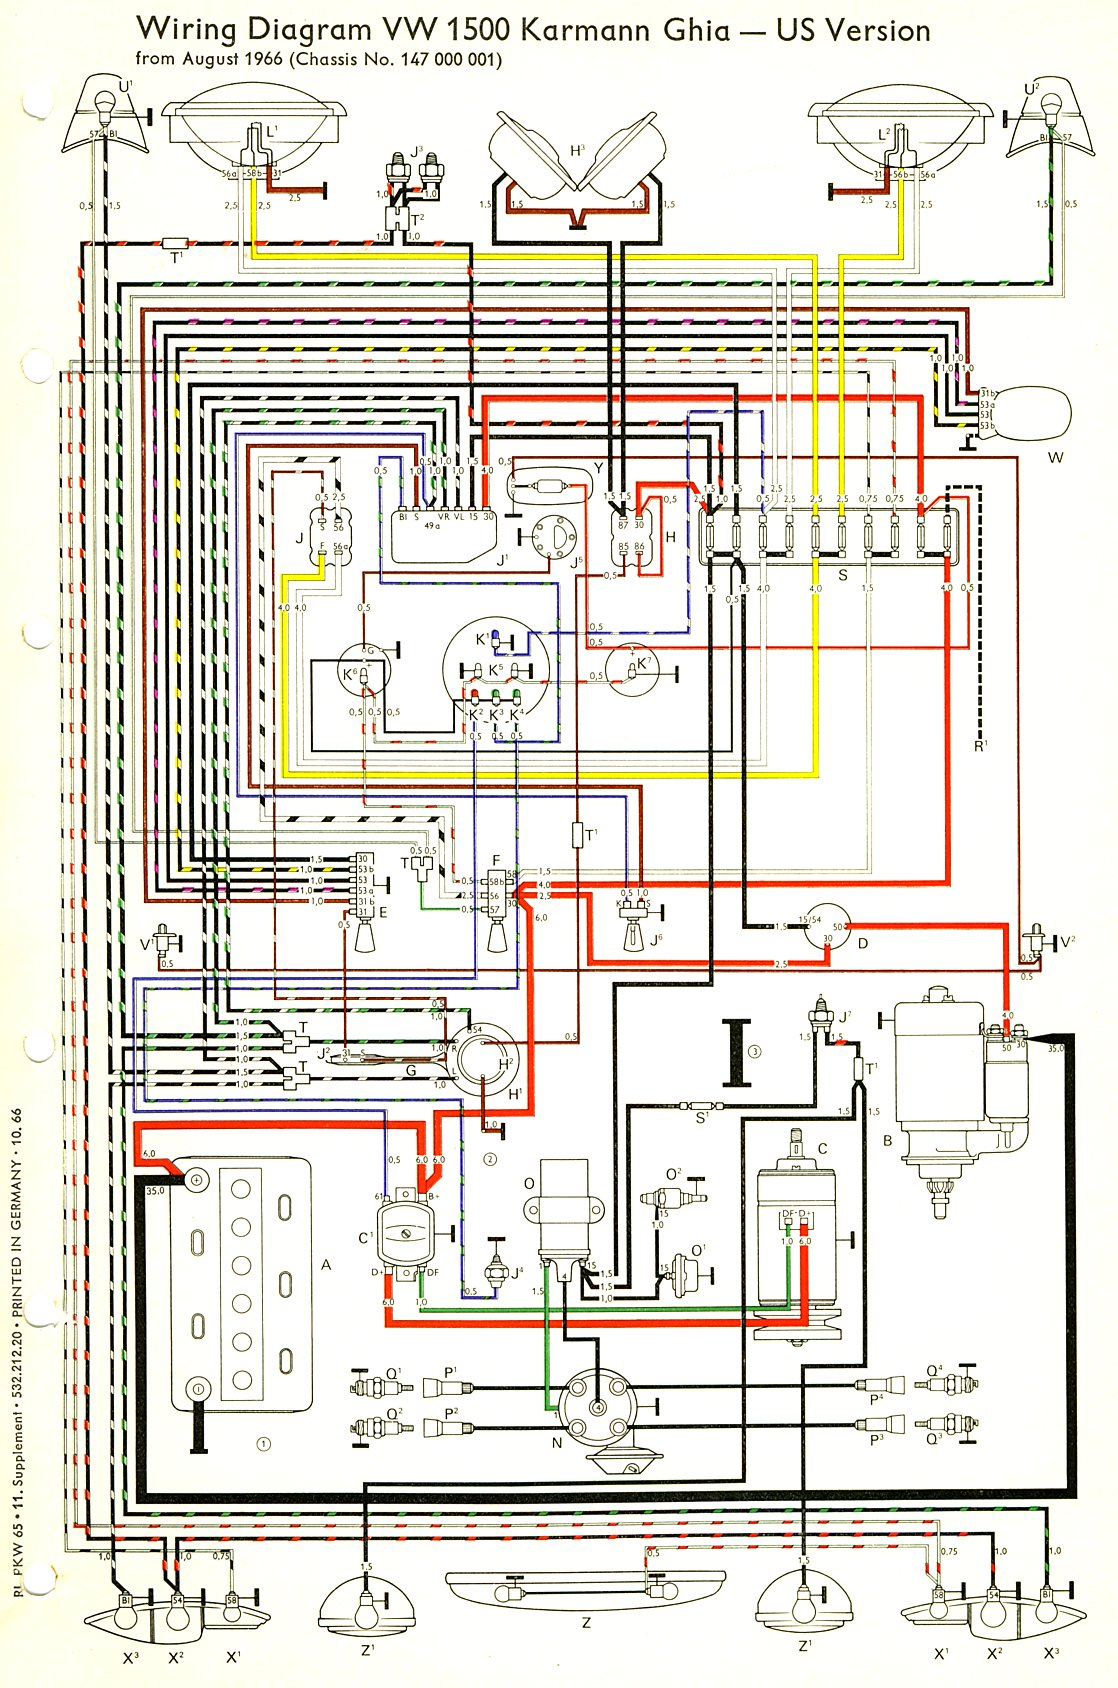 hight resolution of ghia wiring diagram wiring diagrams electrical wiring diagrams for motorcycles ferrari electrical wiring diagram